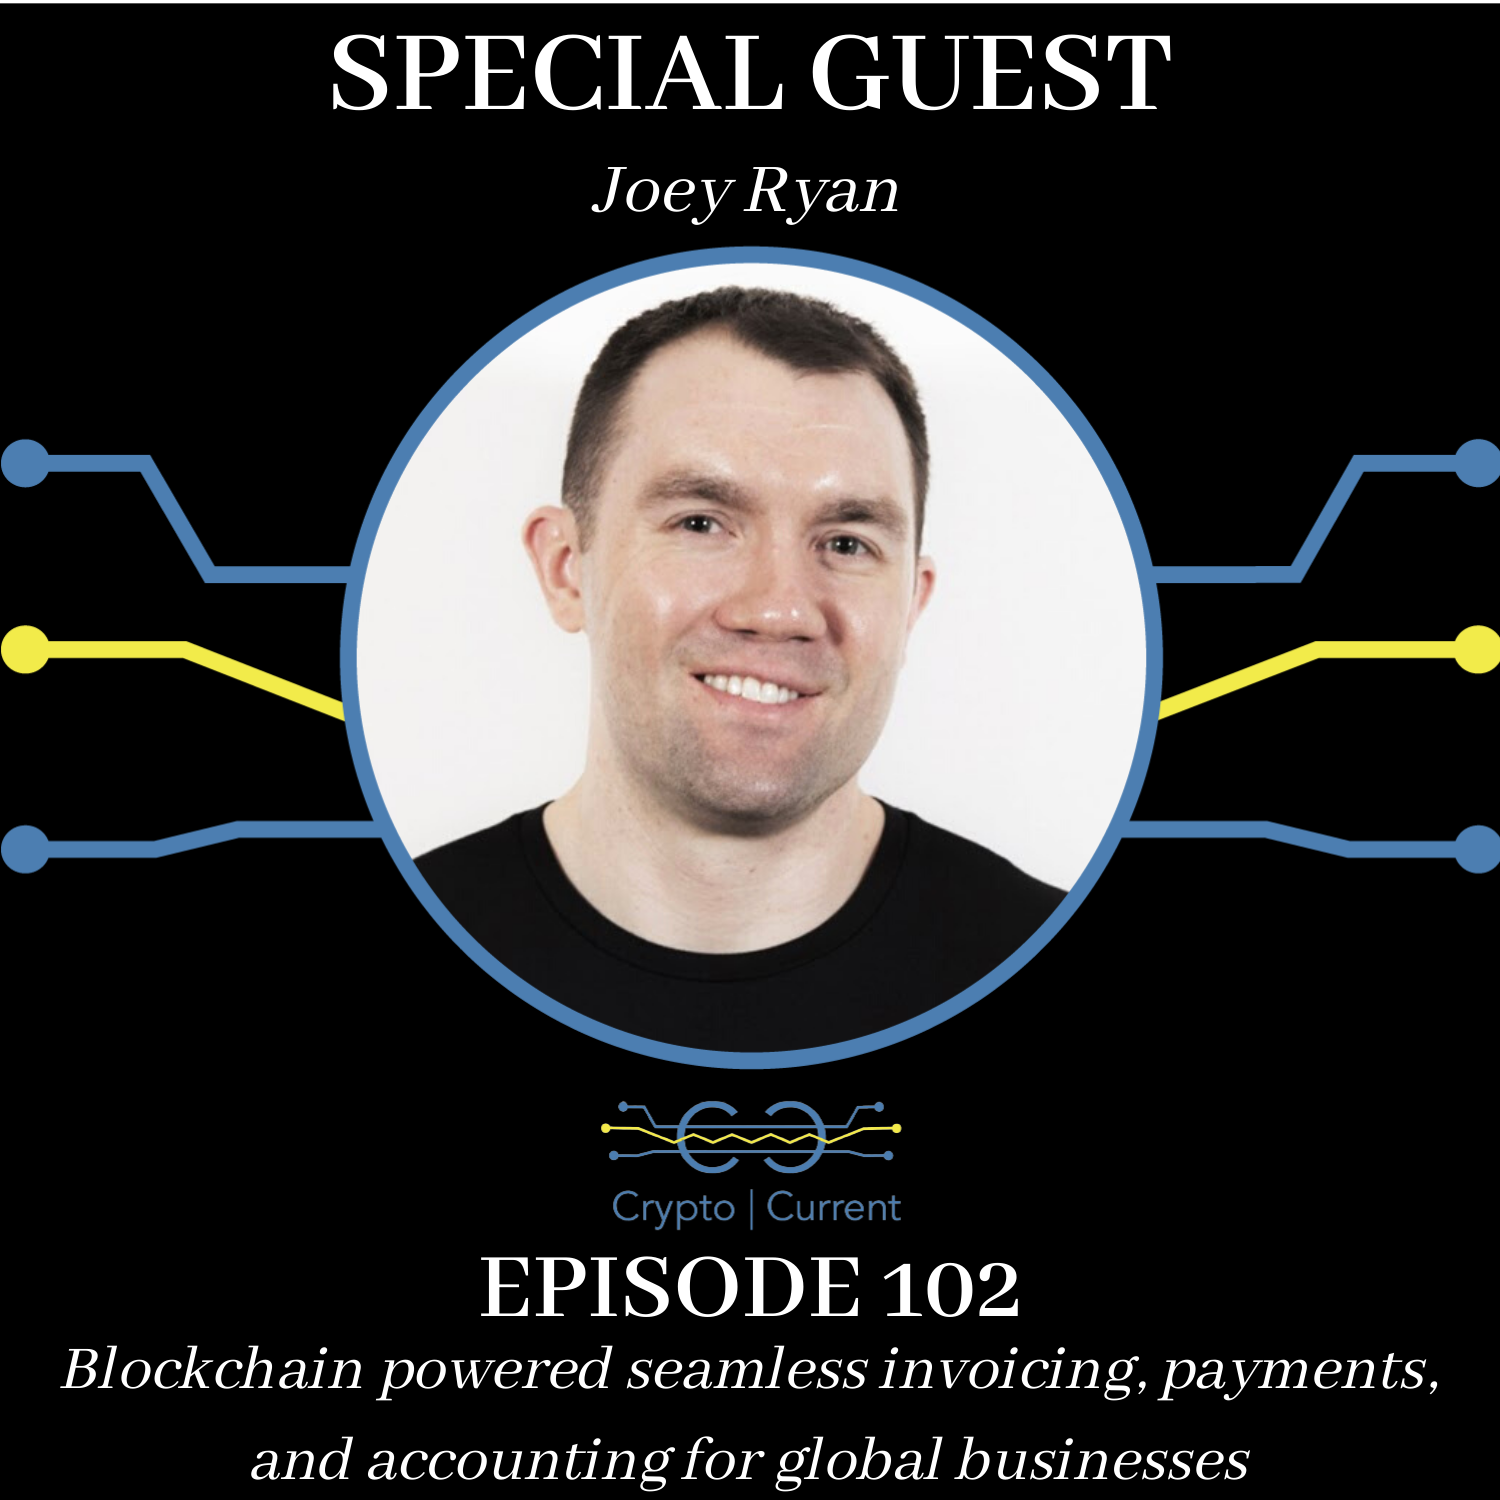 Episode 102: Blockchain powered seamless invoicing, payments, and accounting for global businesses